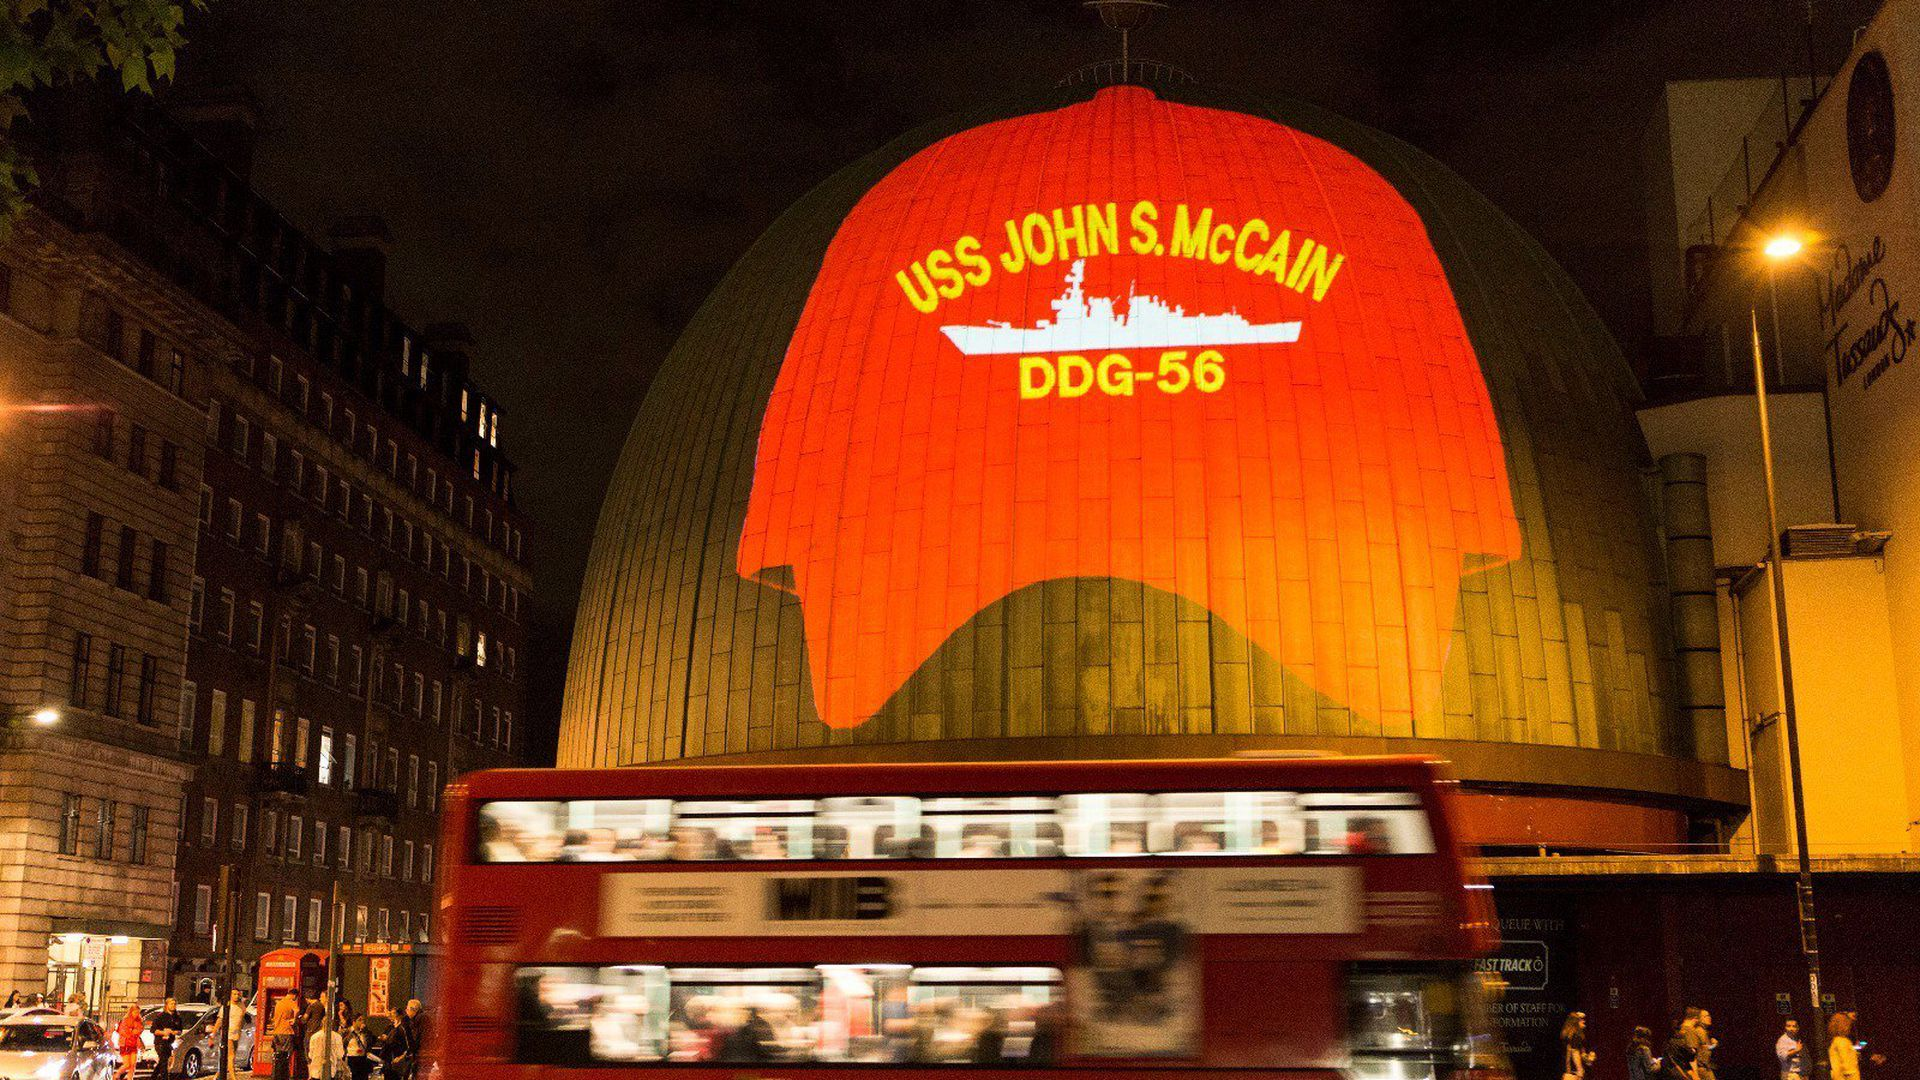 U.K. protests Trump's visit with USS John McCain projection on Madame Tussaud's